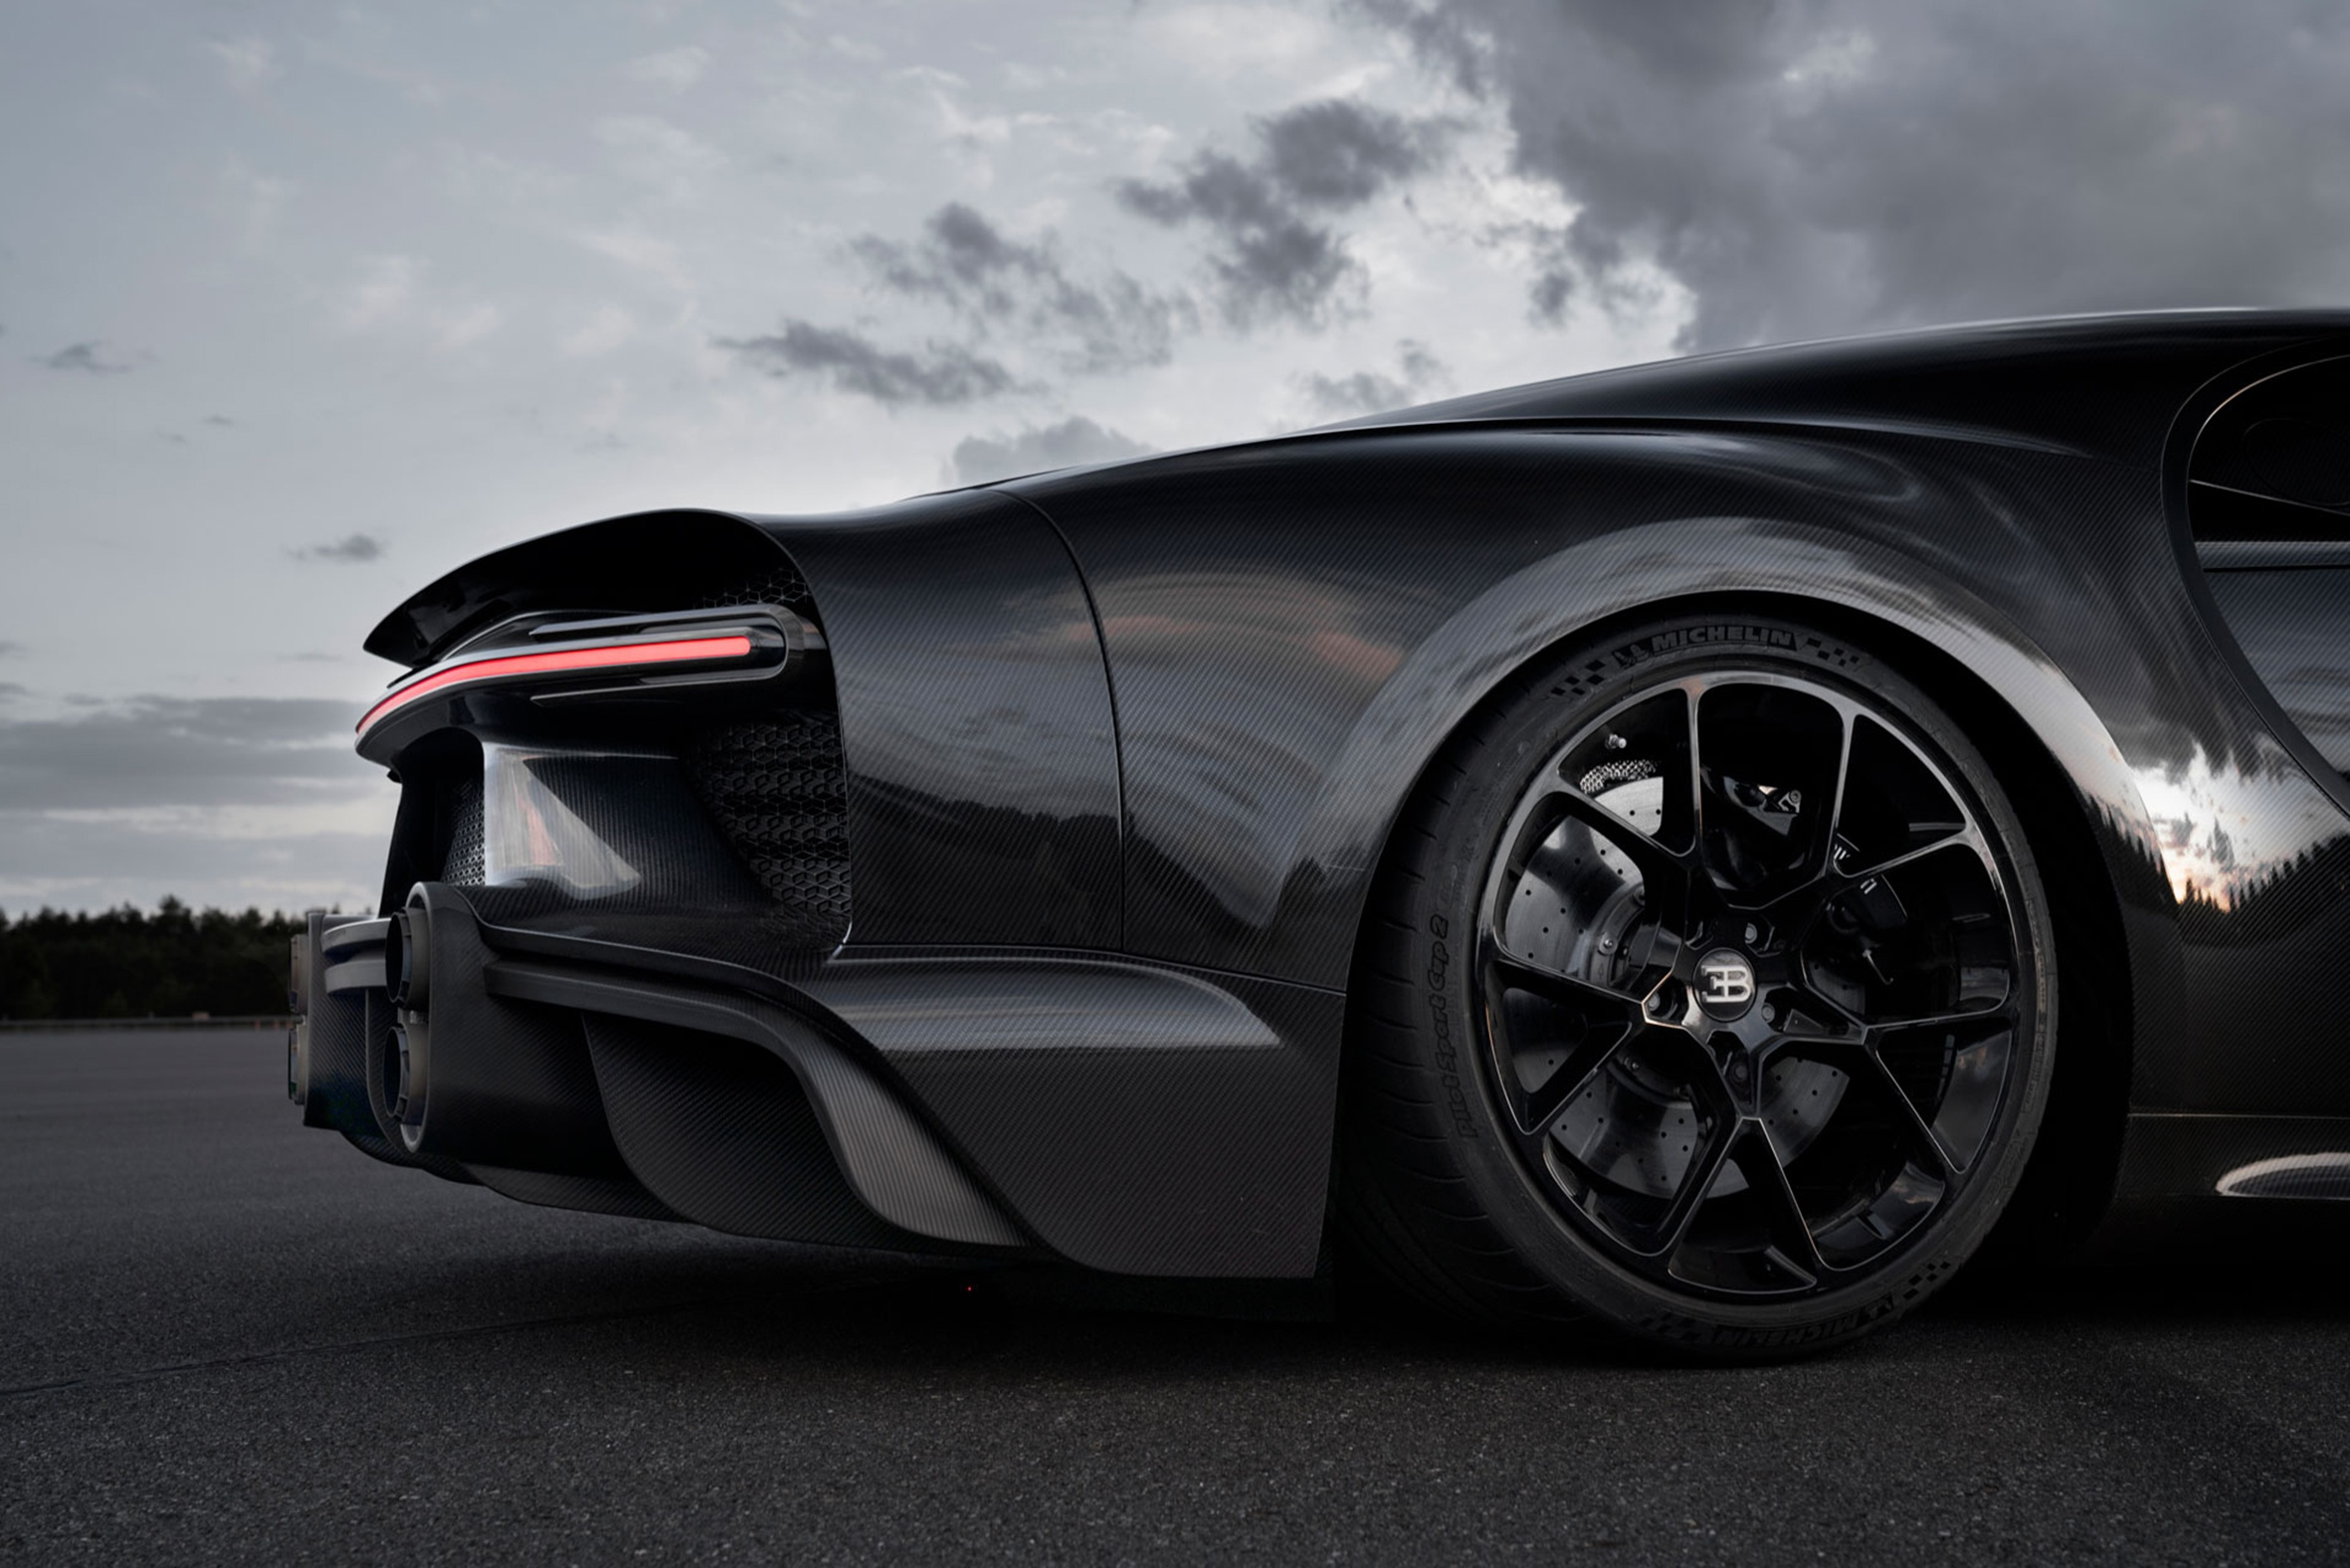 MICHELIN Pilot Sport Cup 2 Becomes Fastest Street Legal Tire in the World